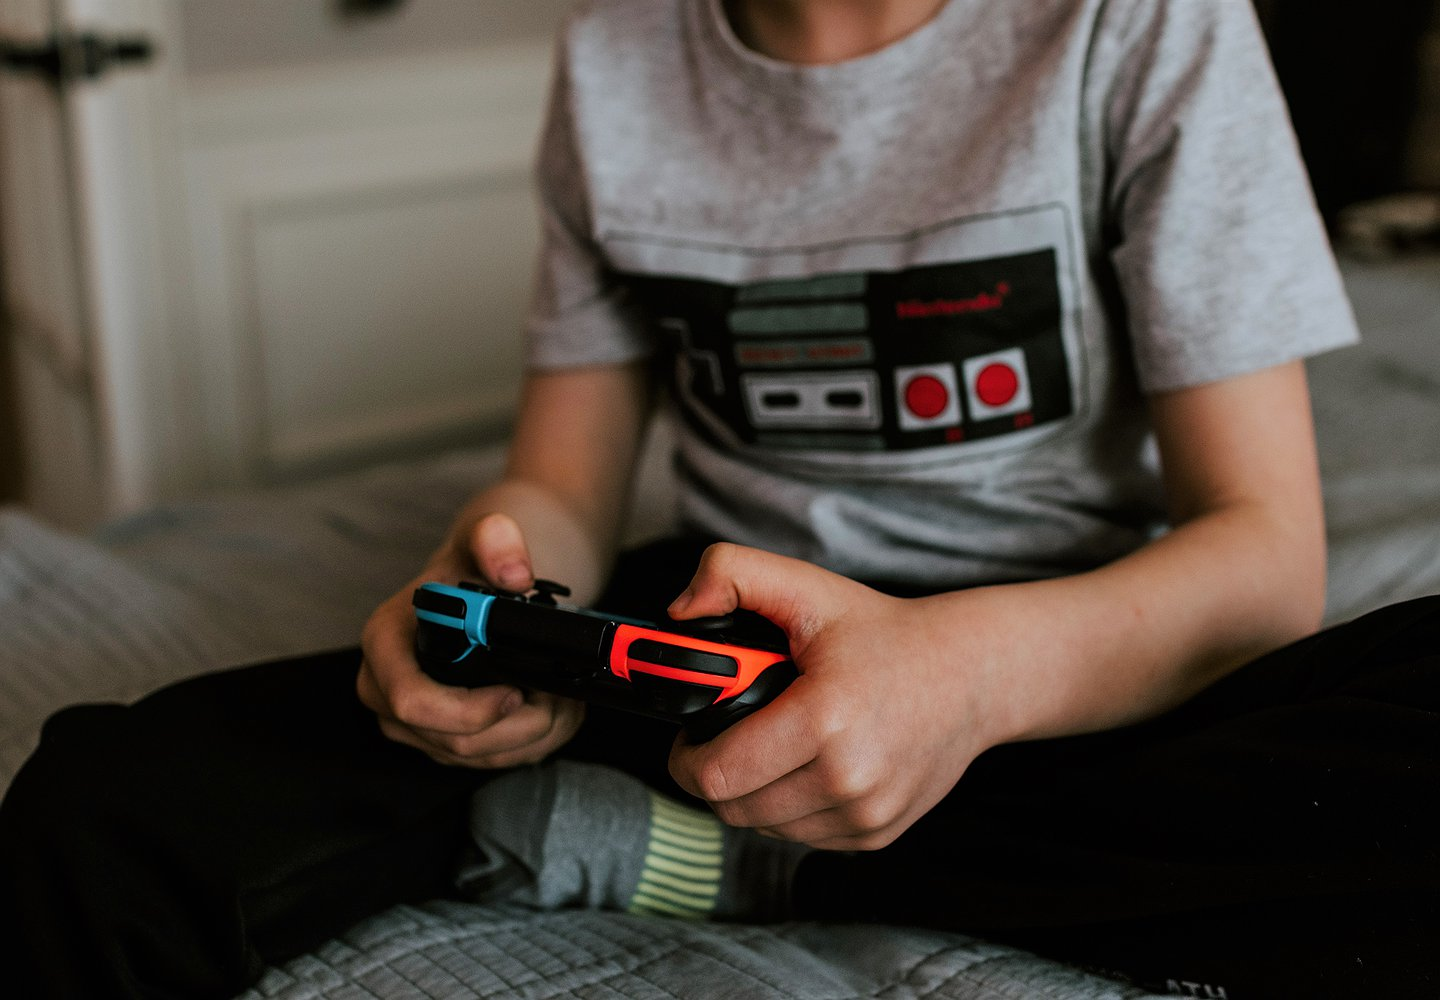 Preteen Gamers Upend Traditional Media Consumption, Says SuperData's Carter Rogers